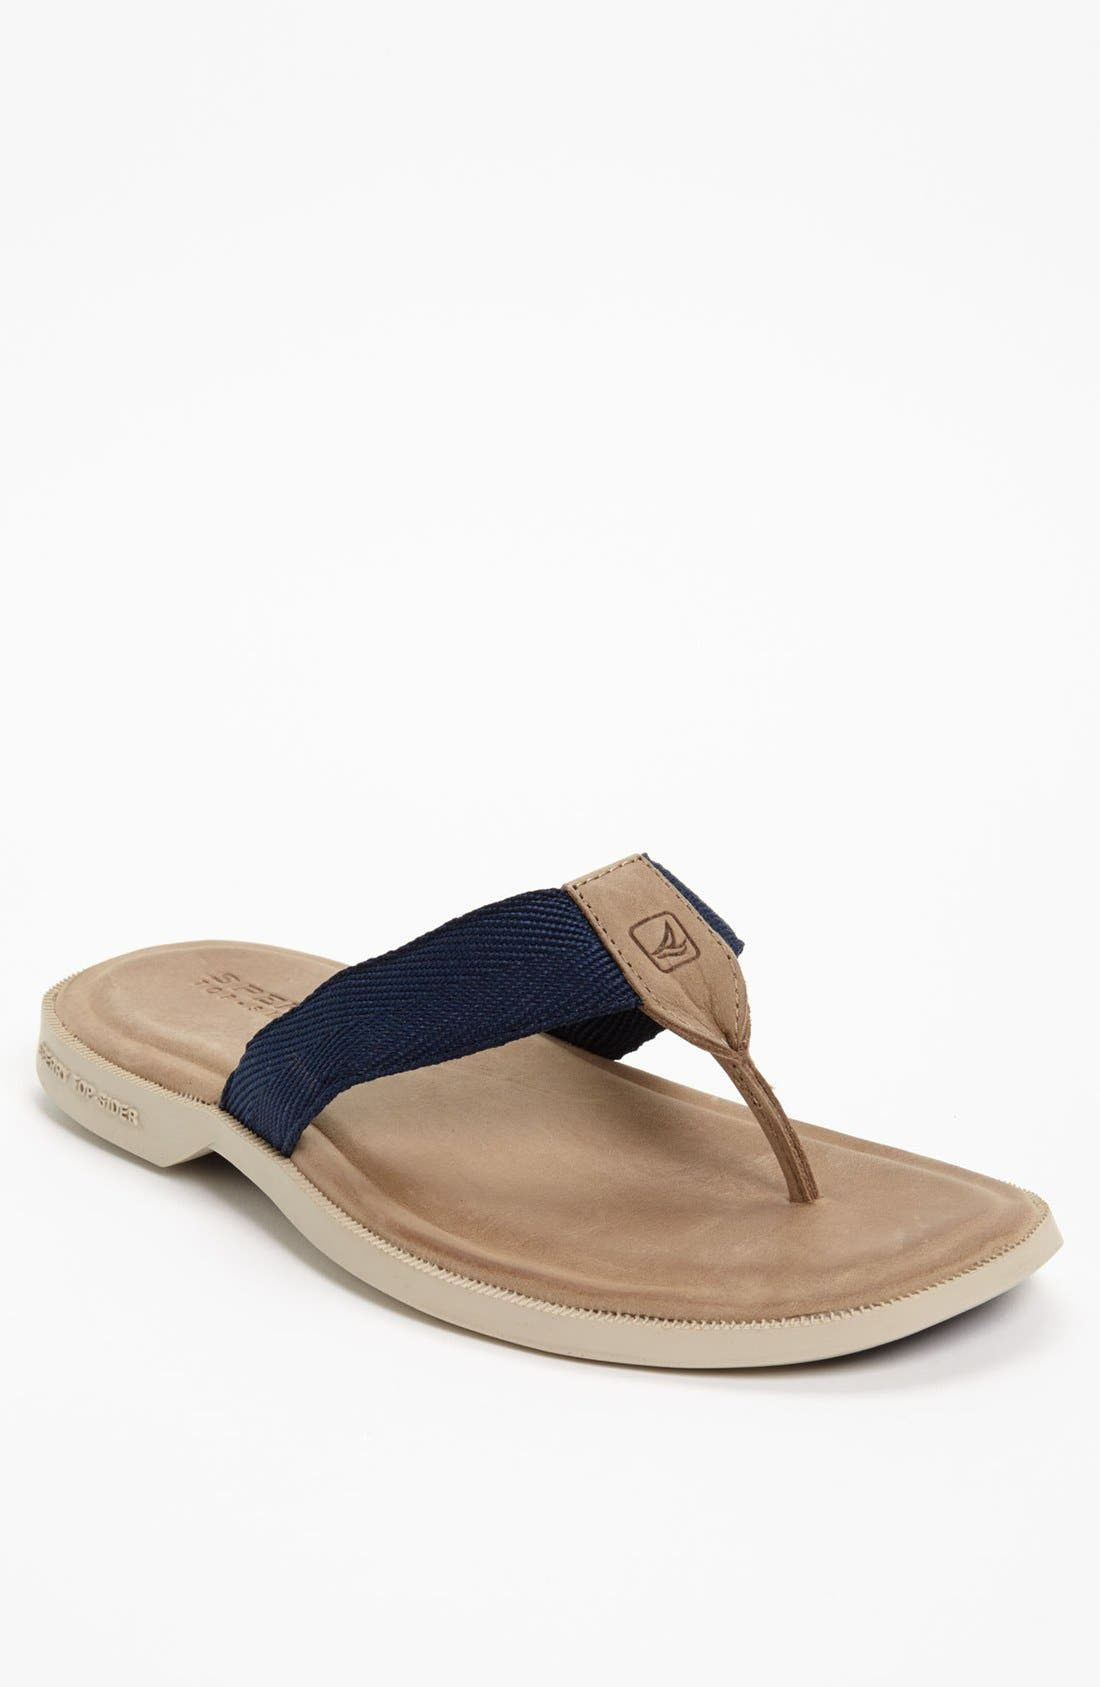 Alternate Image 1 Selected - Sperry Top-Sider® 'Harrison' Flip Flop (Men)